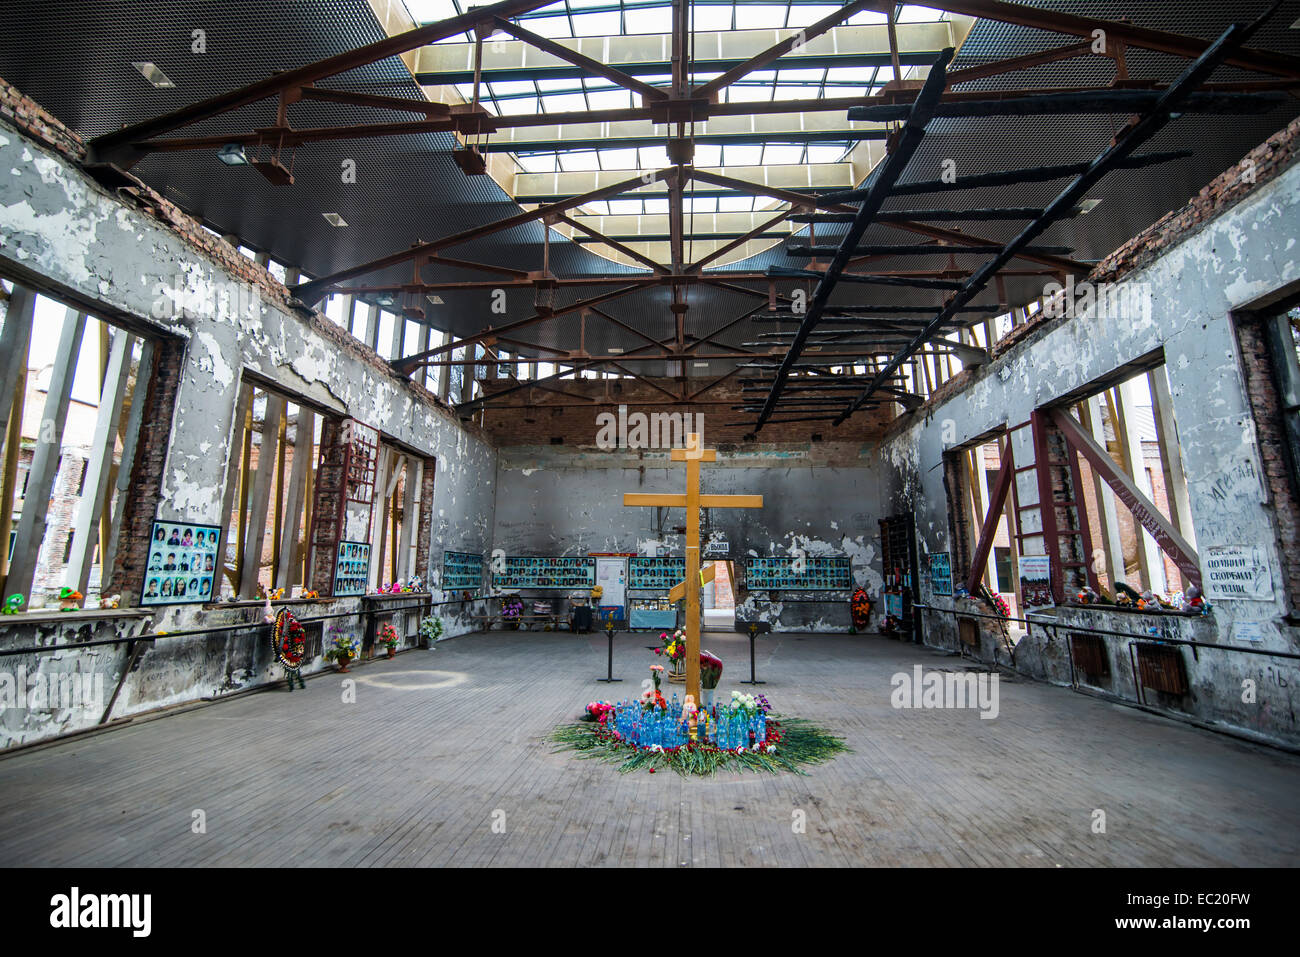 Memorial, Beslan school hostage crisis, in the old gym where the massacre happened, Republic of North Ossetia–Alania, - Stock Image